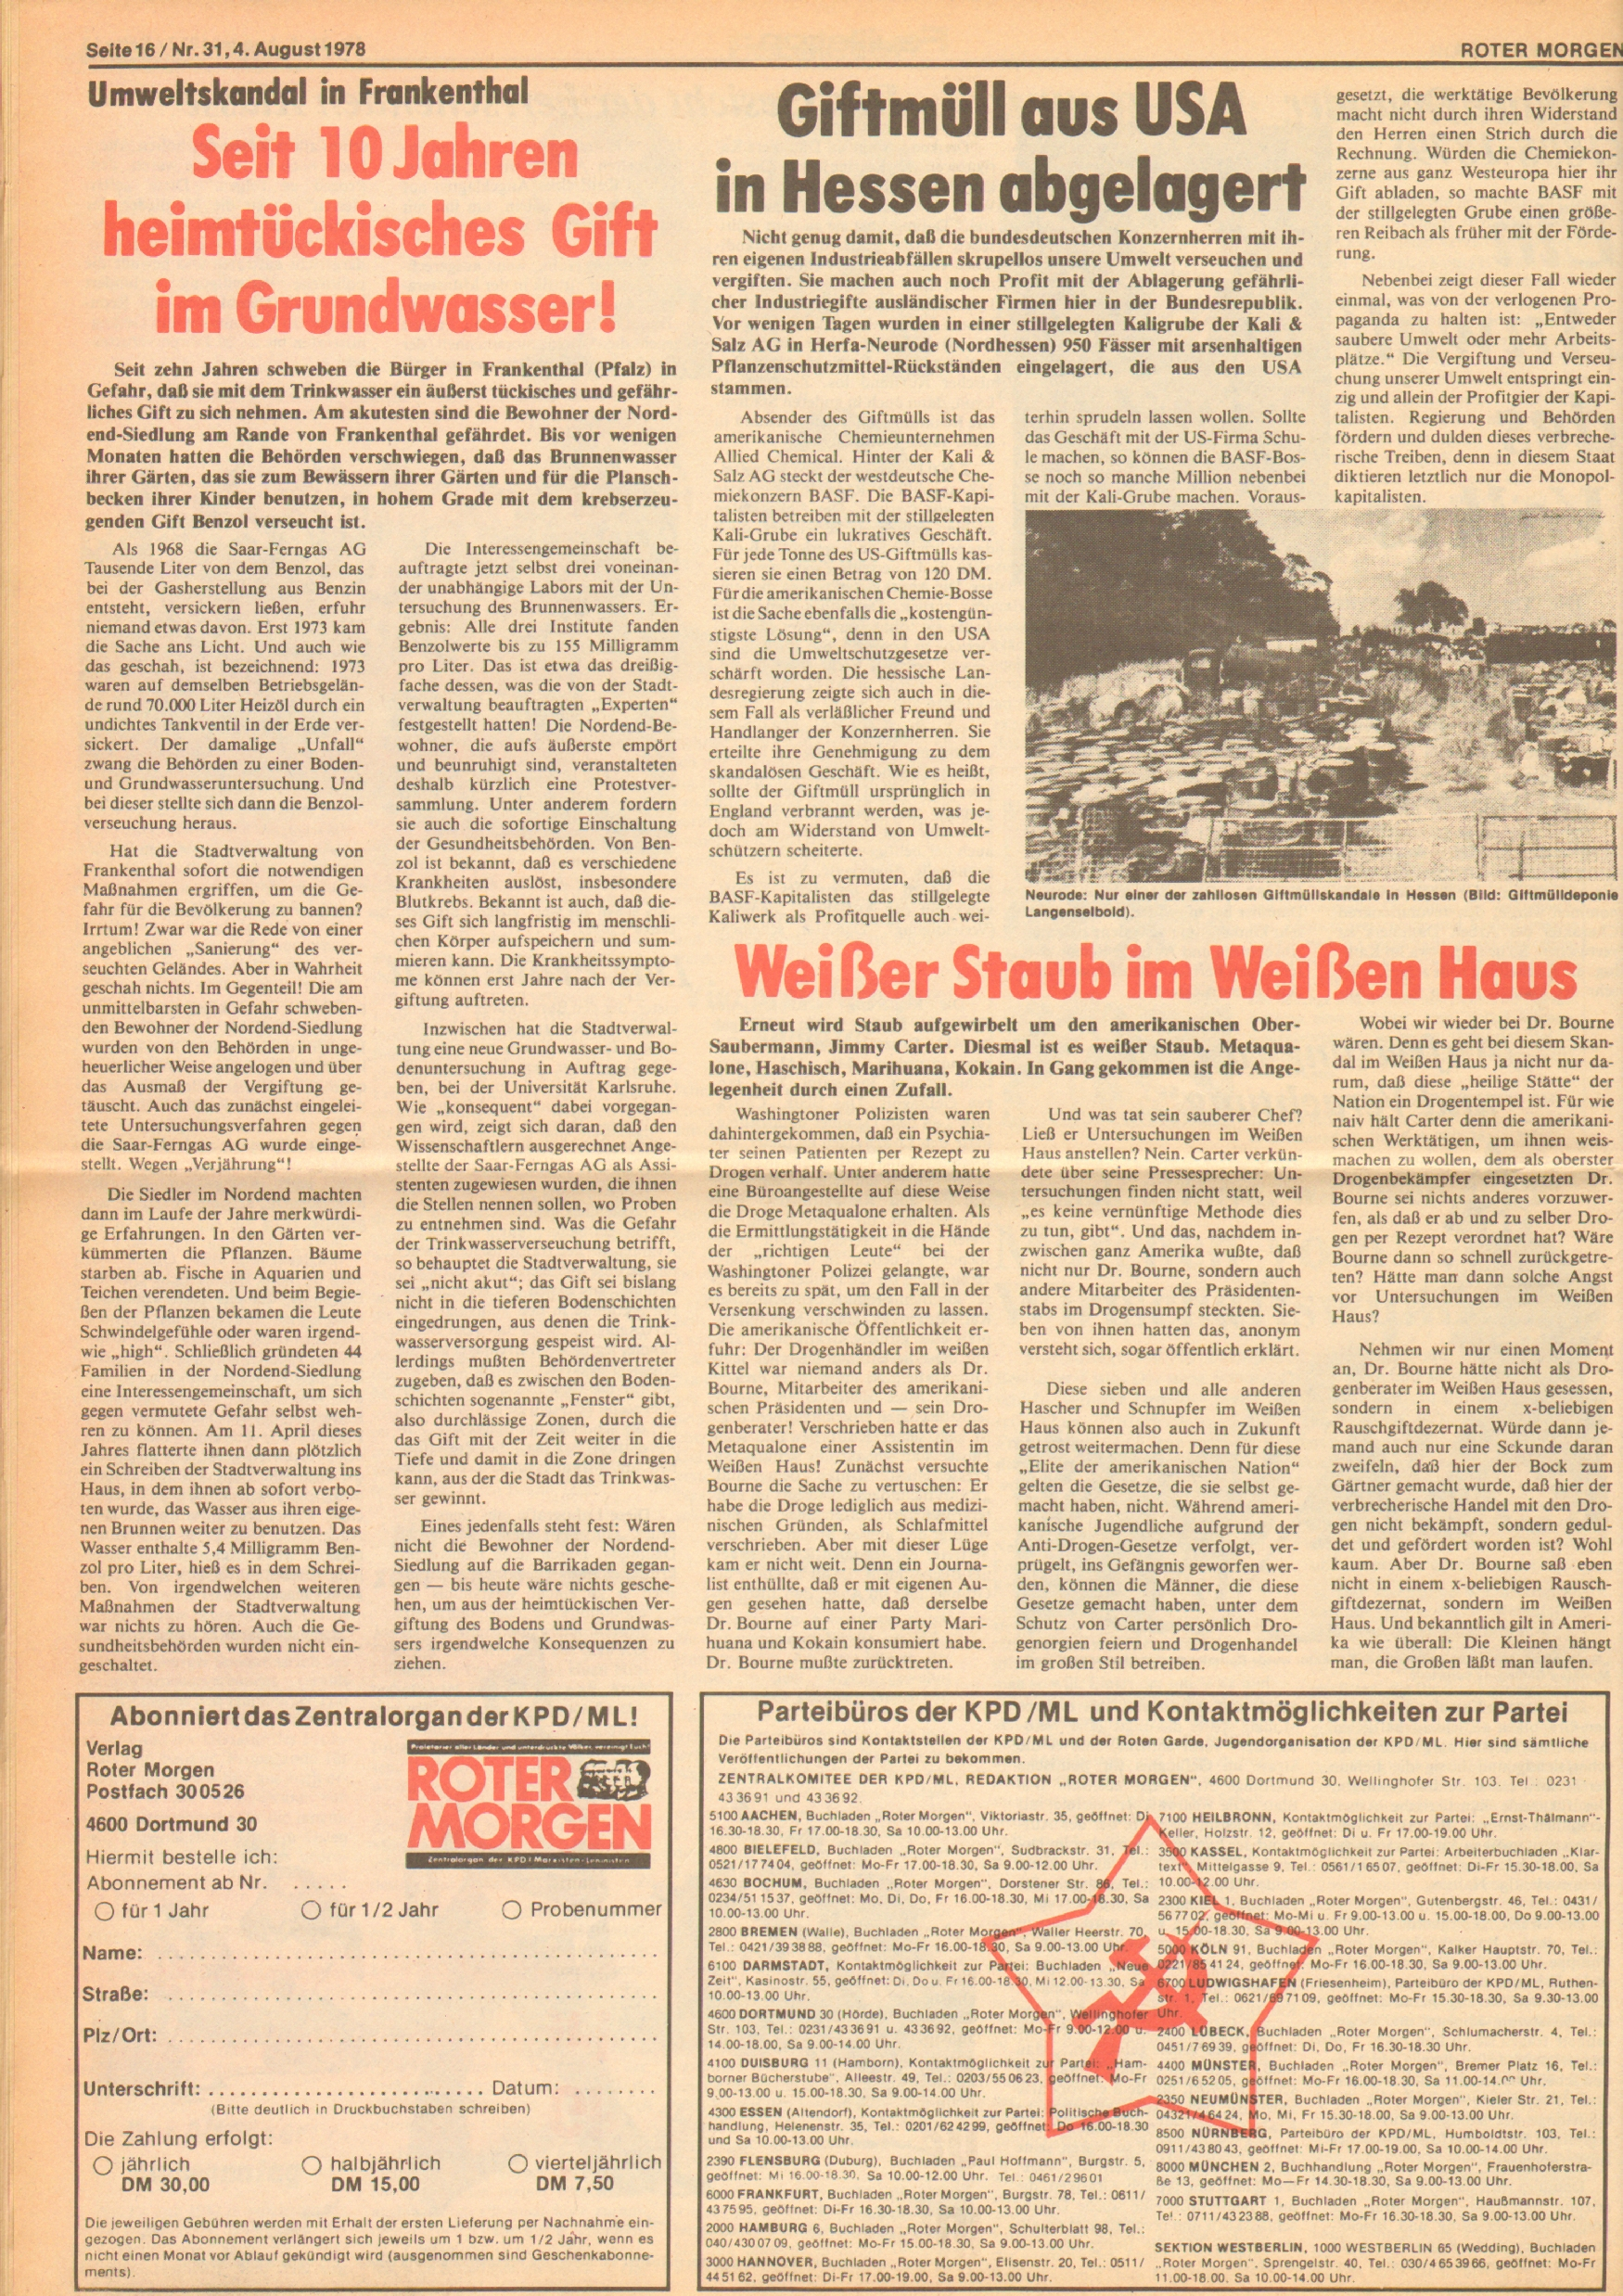 Roter Morgen, 12. Jg., 4. August 1978, Nr. 31, Seite 16